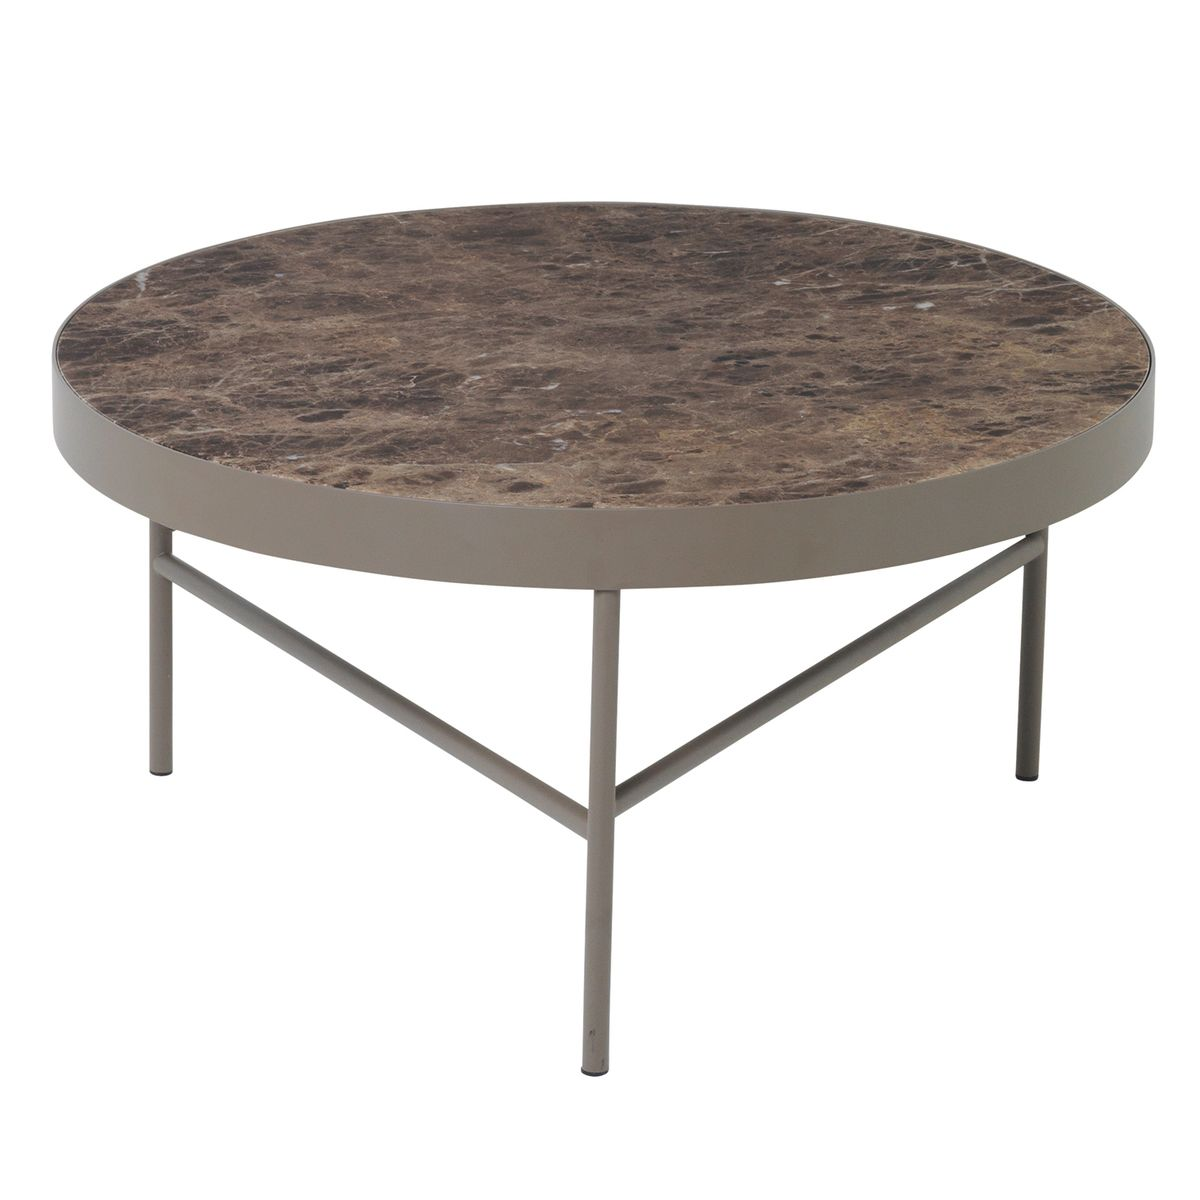 Ferm Living Marble Table Large Brown Marble Table Ferm Living Kitchen Marble